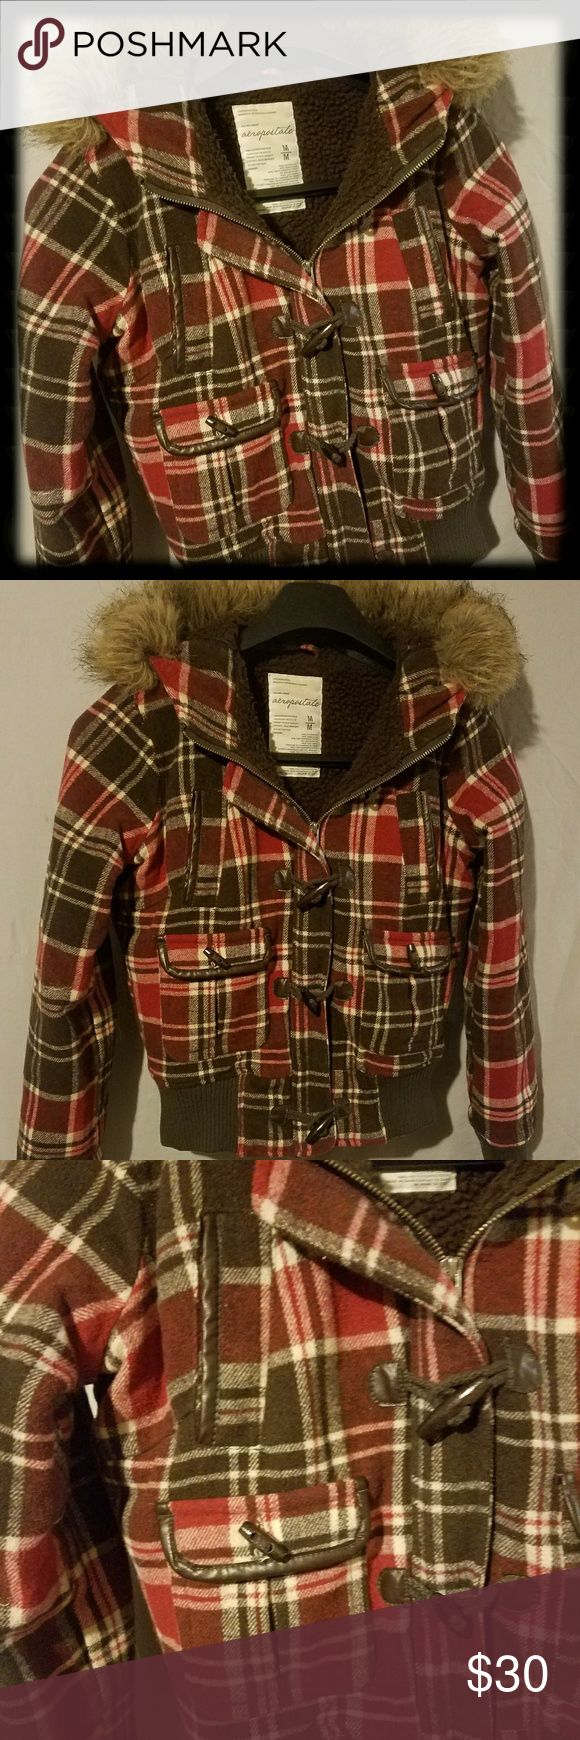 Aeropostale Women's Wool Red & Brown Plaid Coat Aeropostale Women's Wool Red & Brown Plaid Coat Sz Med. Had faux fur around hood that can be removed. Zip & button front. Retro 70's look. Very good condition. Aeropostale Jackets & Coats Utility Jackets